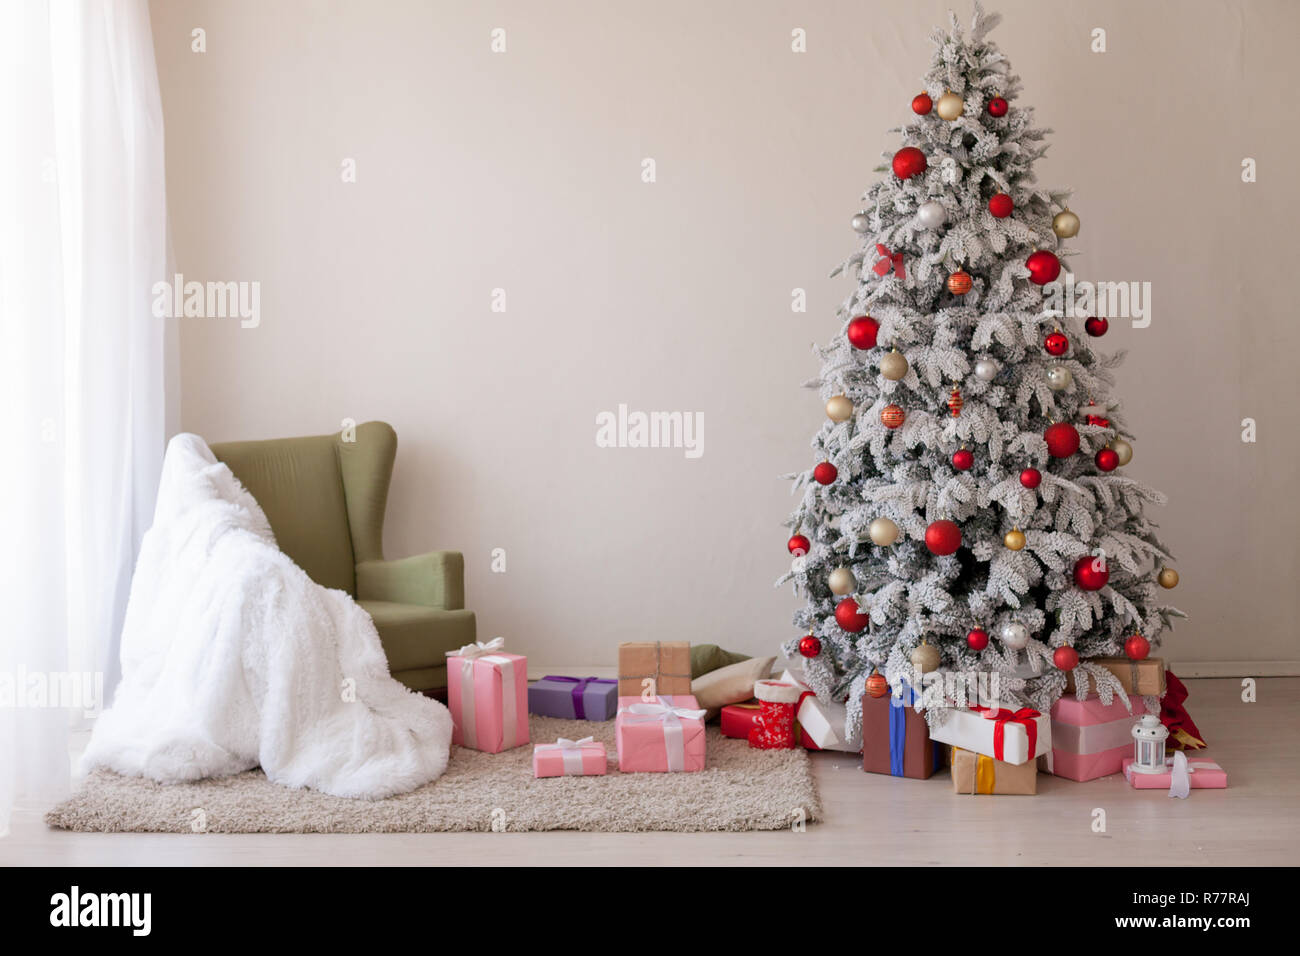 Christmas tree winter new year holiday gifts white home decor - Stock Image